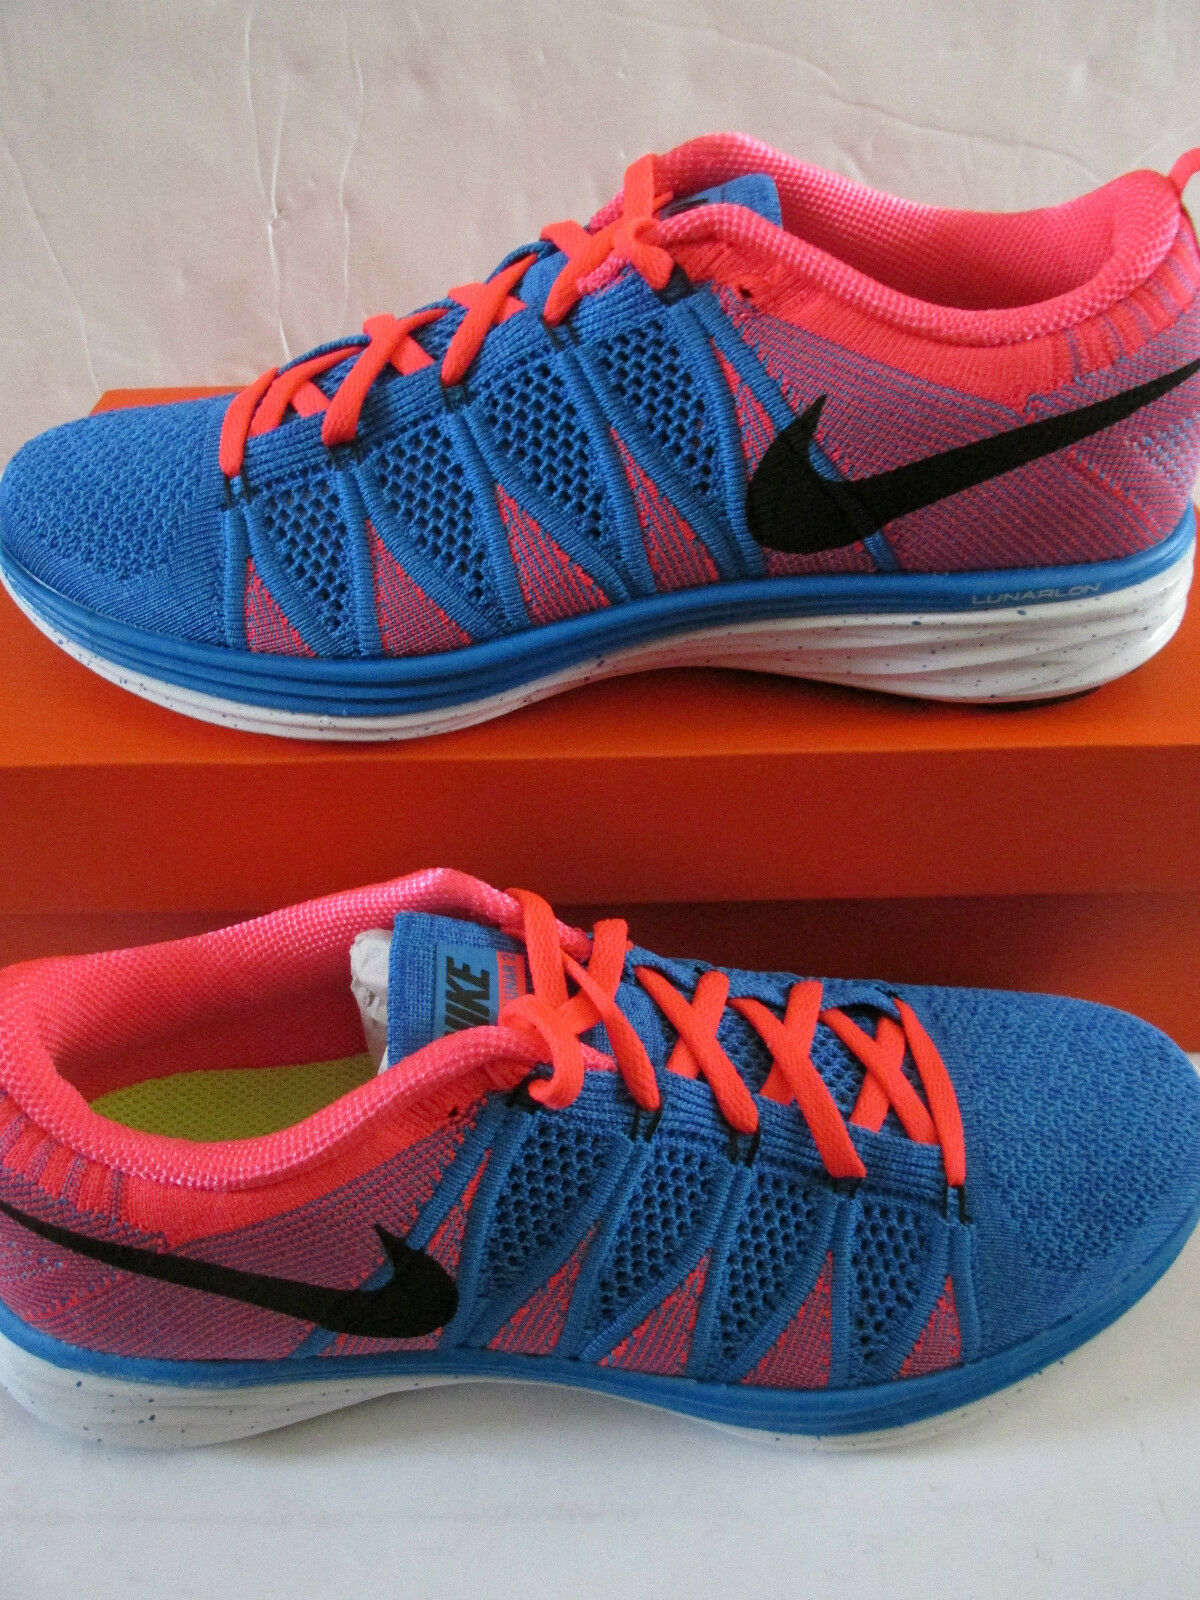 New shoes for men and women, limited time discount nike flyknit lunar2 mens running trainers 620465 402 sneakers shoes